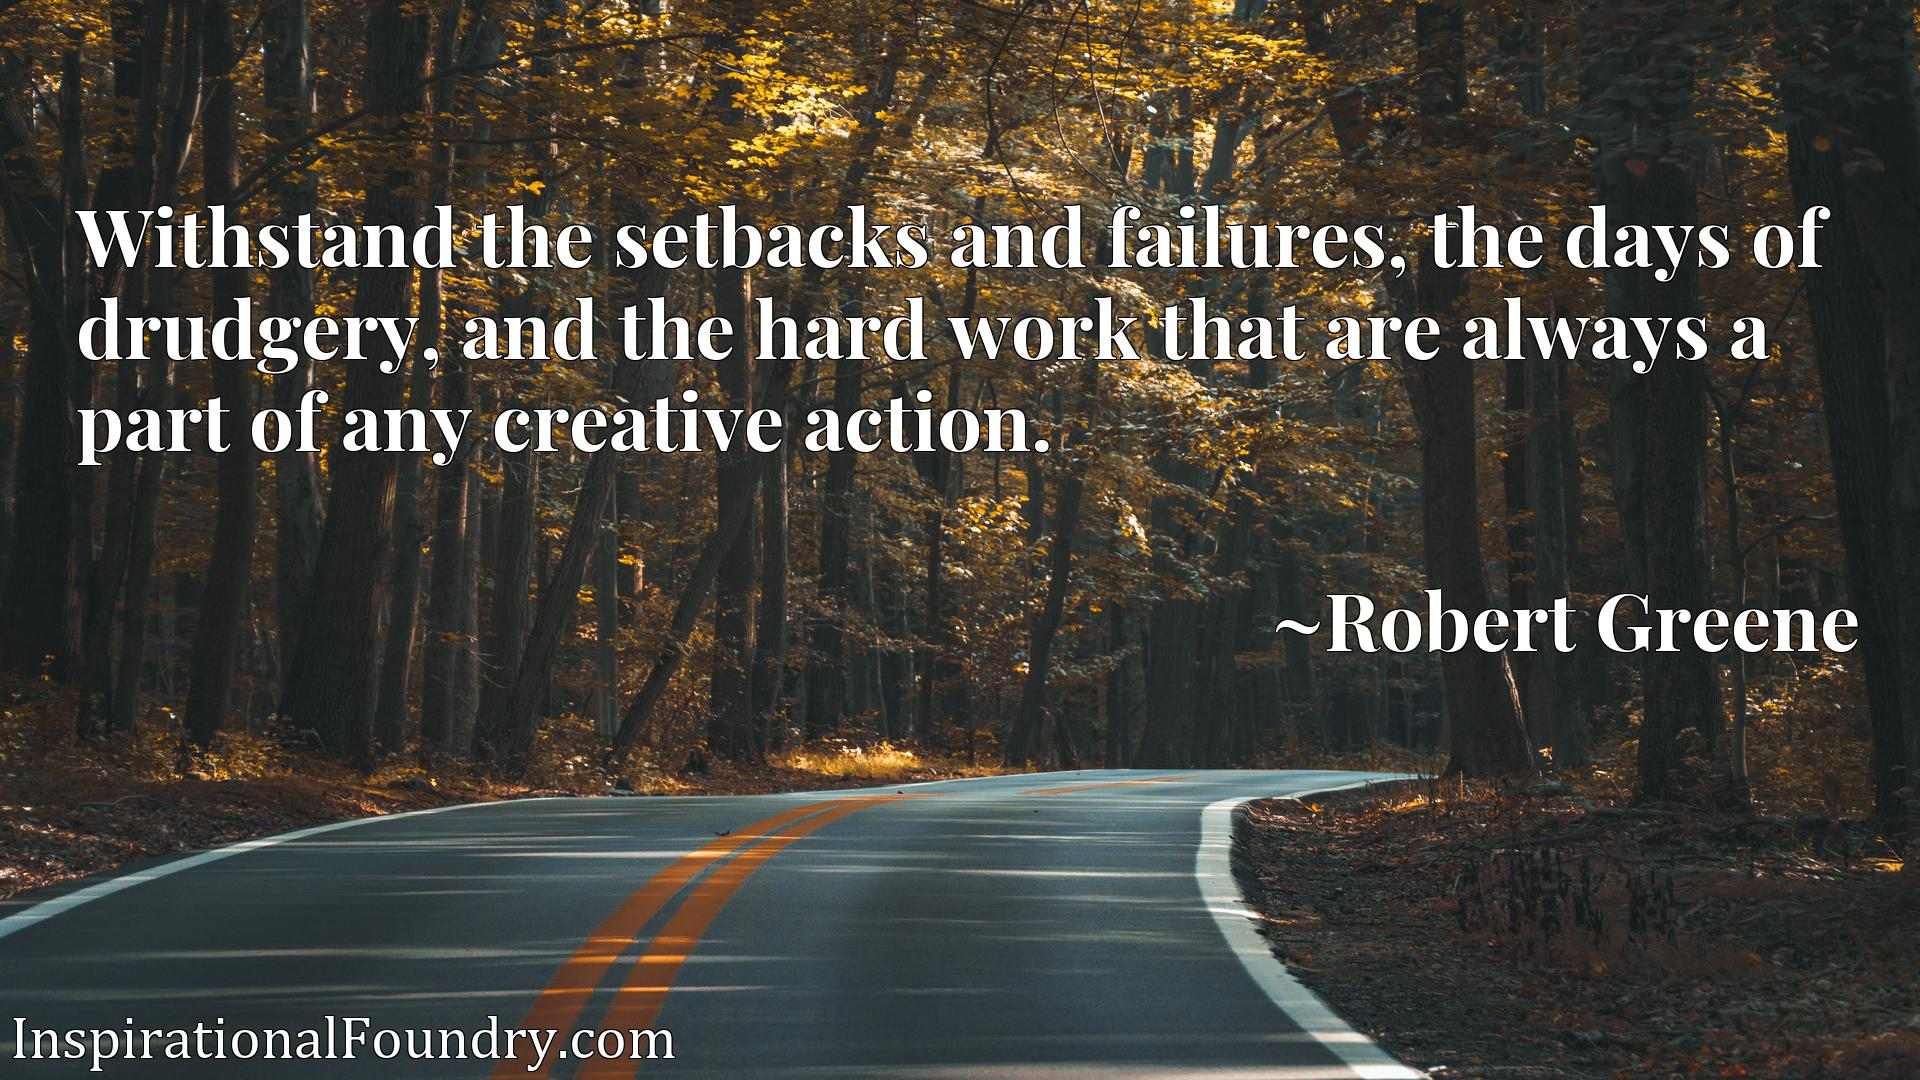 Withstand the setbacks and failures, the days of drudgery, and the hard work that are always a part of any creative action.